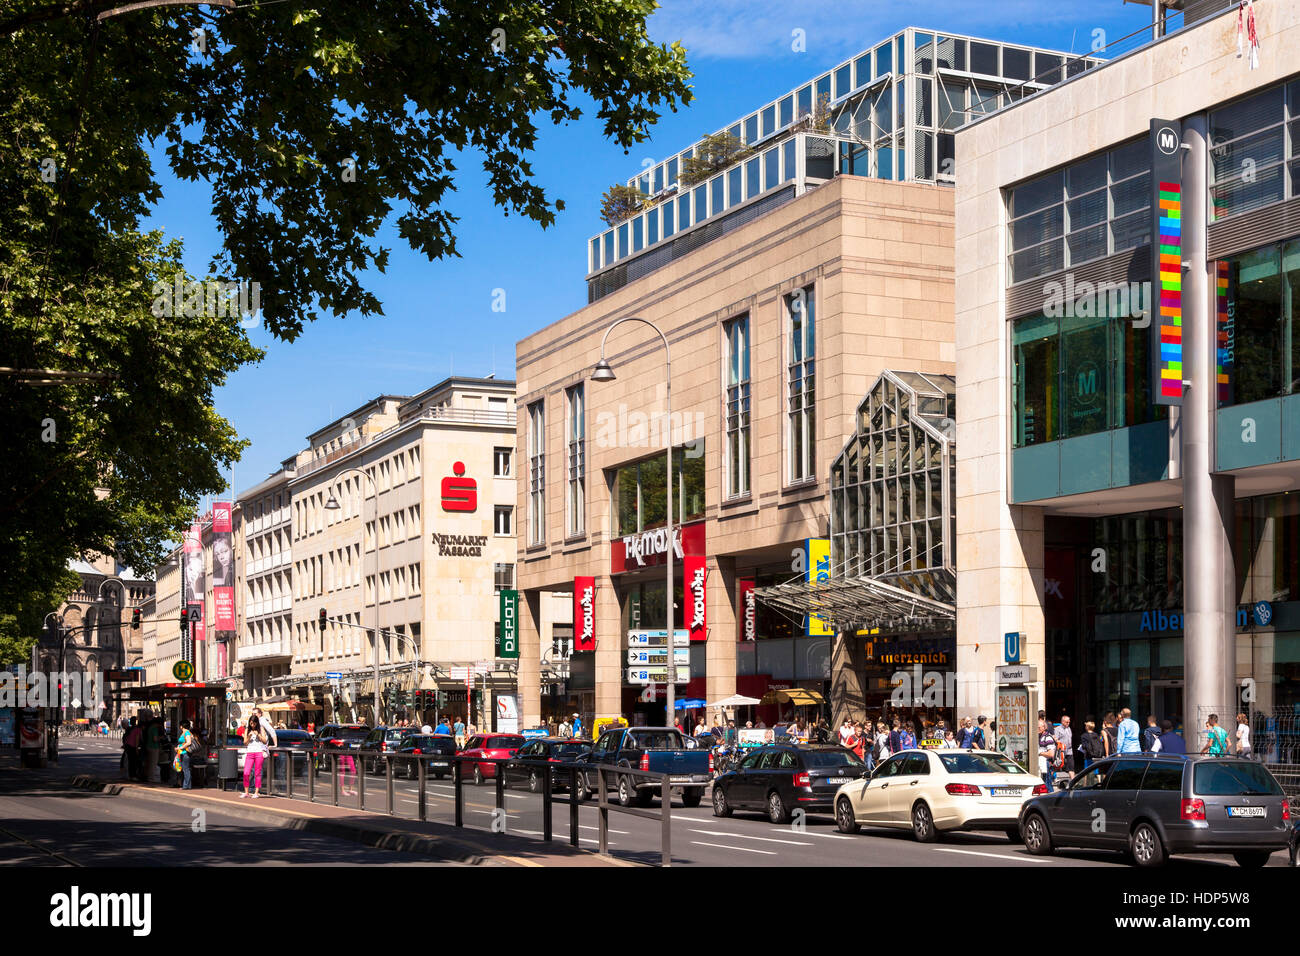 Oldenburg Shopping Center Neumarkt Cologne Germany Shopping Stock Photos And Neumarkt